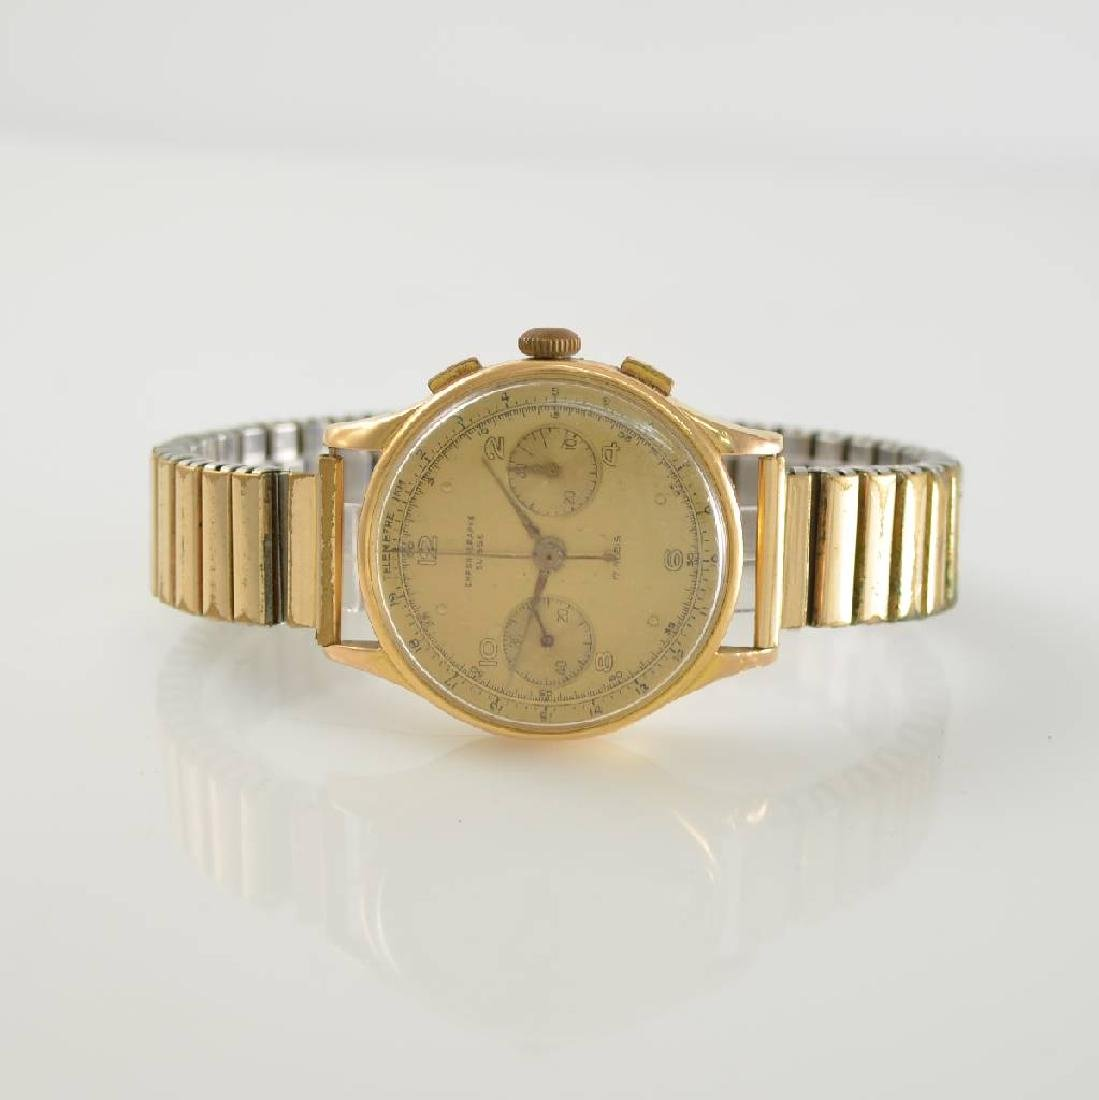 CHRONOGRAPHE SUISSE 18k pink gold gents wristwatch